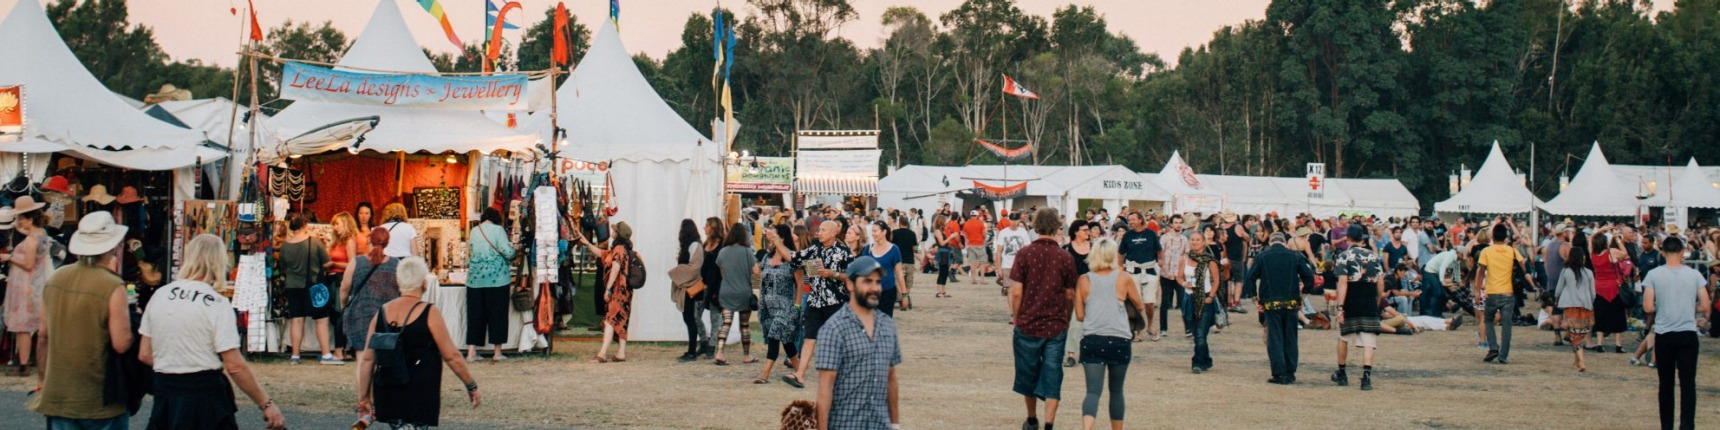 Festival at Byron Bay.